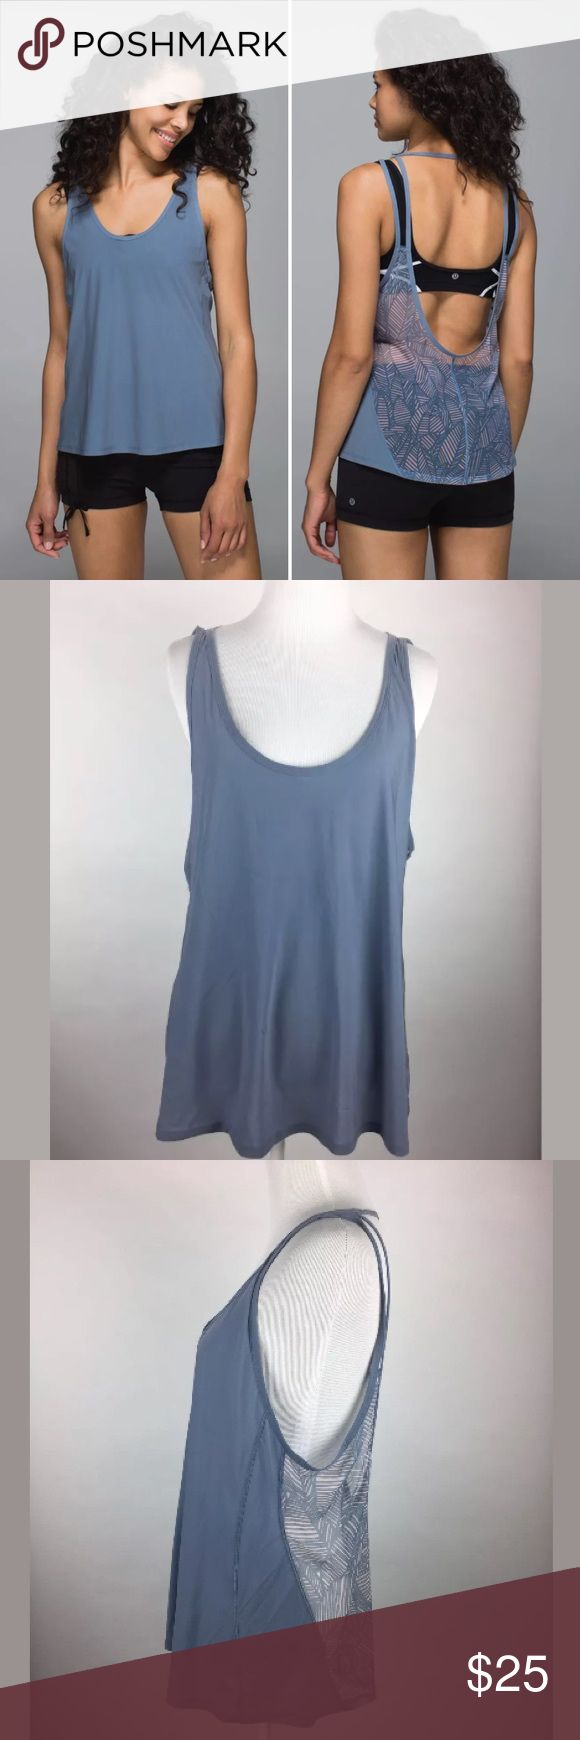 """Lululemon Cool to Street Blue Gray Sheer Tank Top Lululemon Cool to Street In Blue Denim Sheer Open Back Athletic Tank Top Sz 8  36"""" Bust, 25"""" Length  ESTIMATED To fit a size 8. Please use measurements to ensure fit as the size tag is missing.  There are two light spots on the front; view all photos for detail.   From Lulu's site:  Why we made this An easy layer so lightweight we forget we're even wearing it? Yes, please! This sweat-wicking tank is loose and airy to keep us cool and…"""